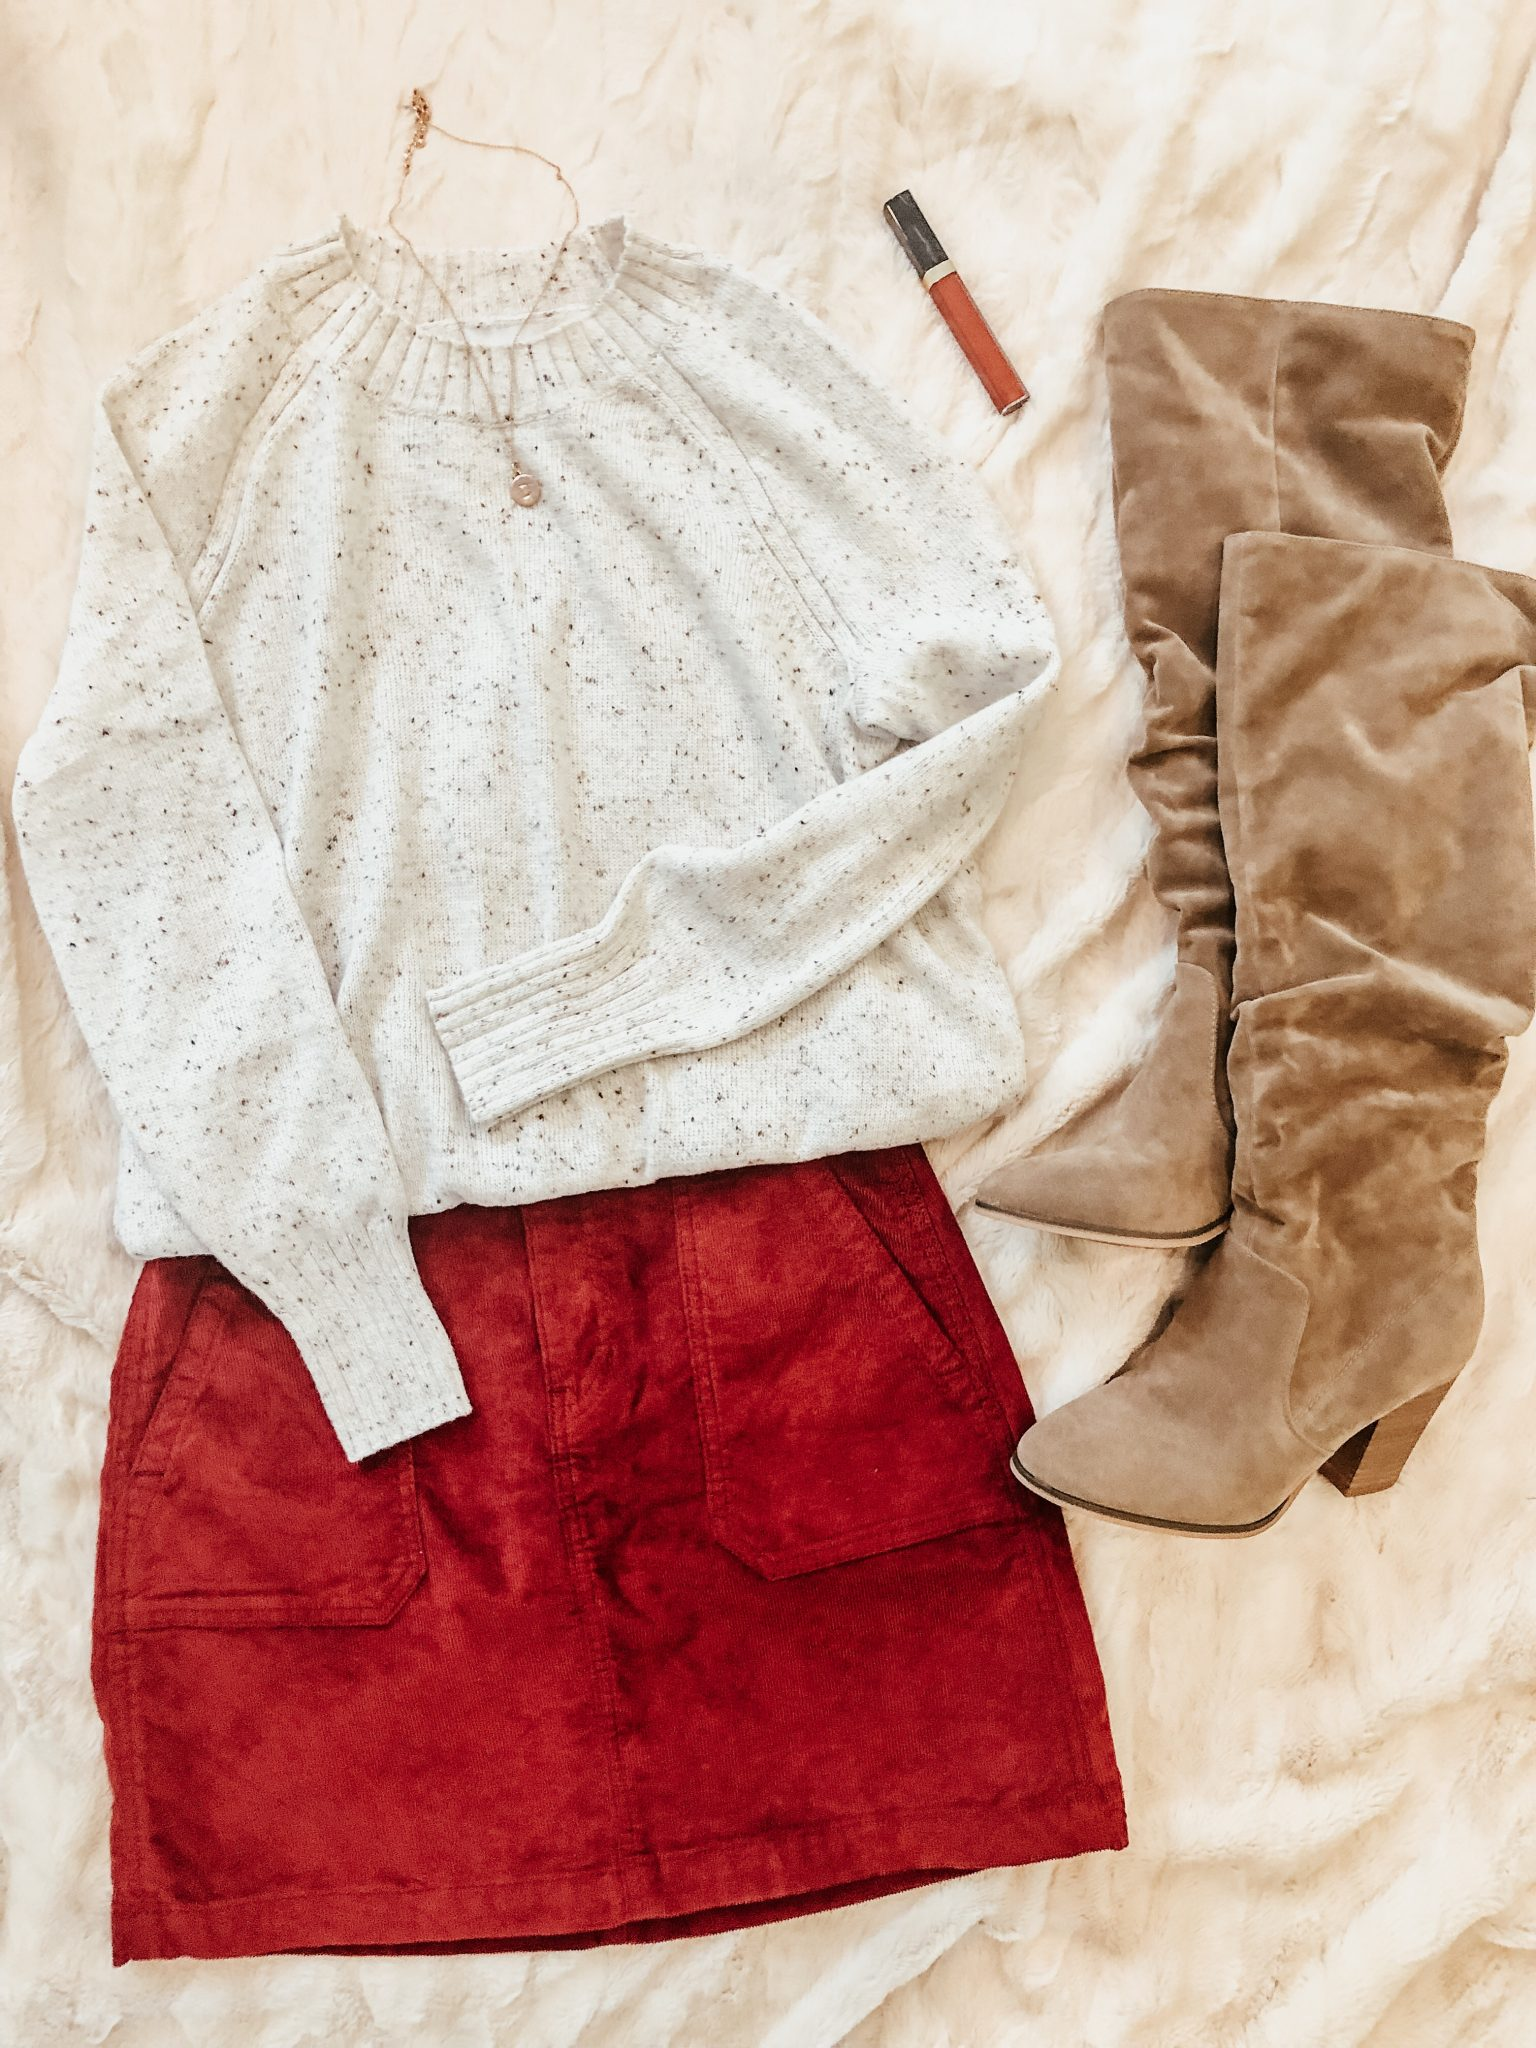 Shoe capsule for fall | Daily Splendor Life and Style Blog | #fallshoes #shoeroundup #shoecapsule #boots #flatlay #corduroy #fallstyle #momstyle #casualstyle #targetstyle